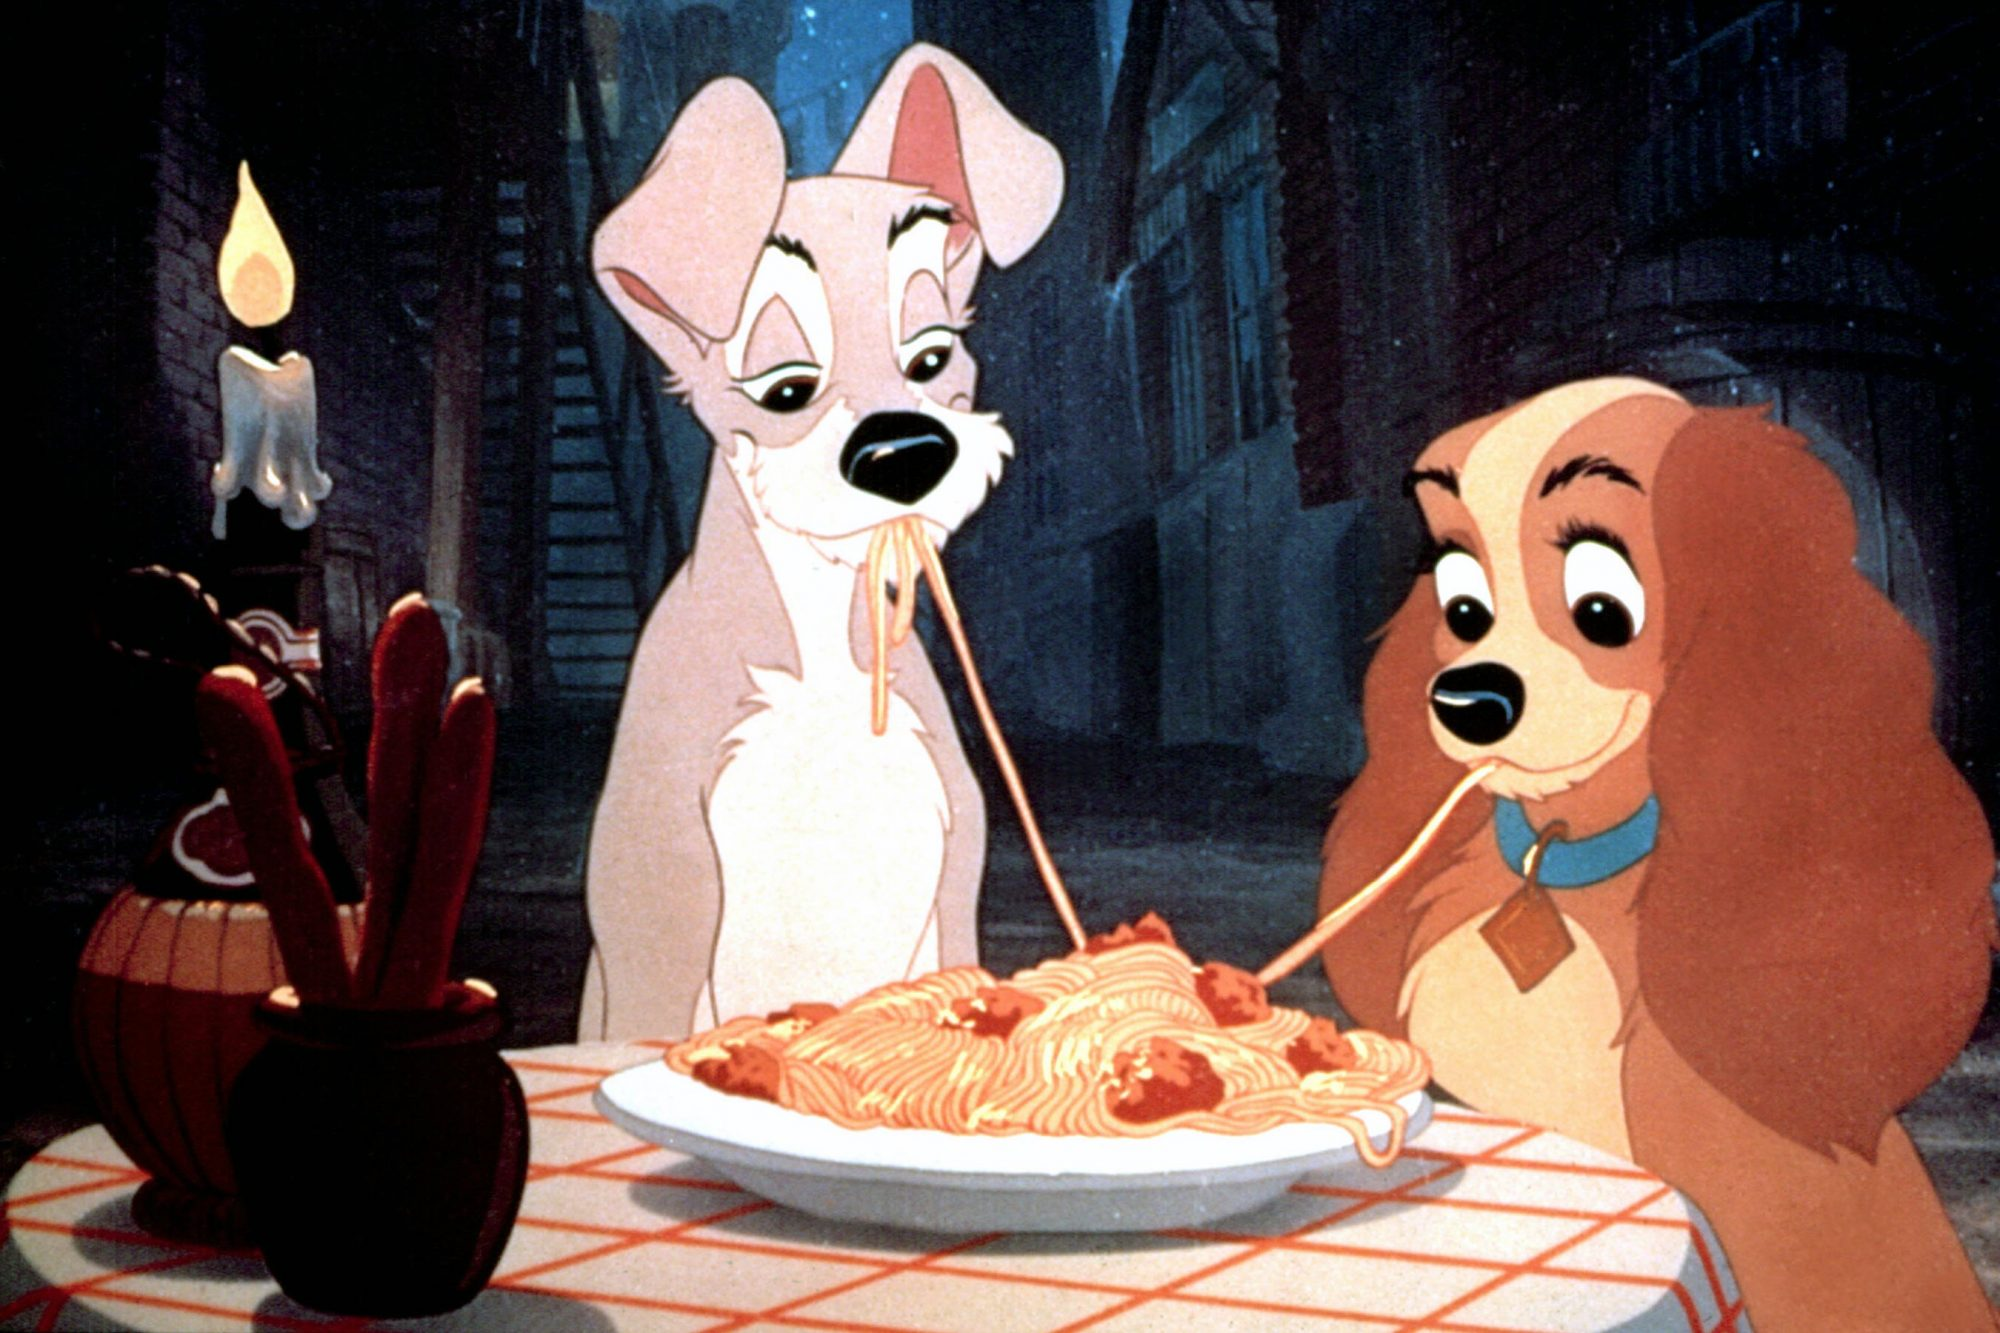 LADY AND THE TRAMP, Tramp, Lady, 1955